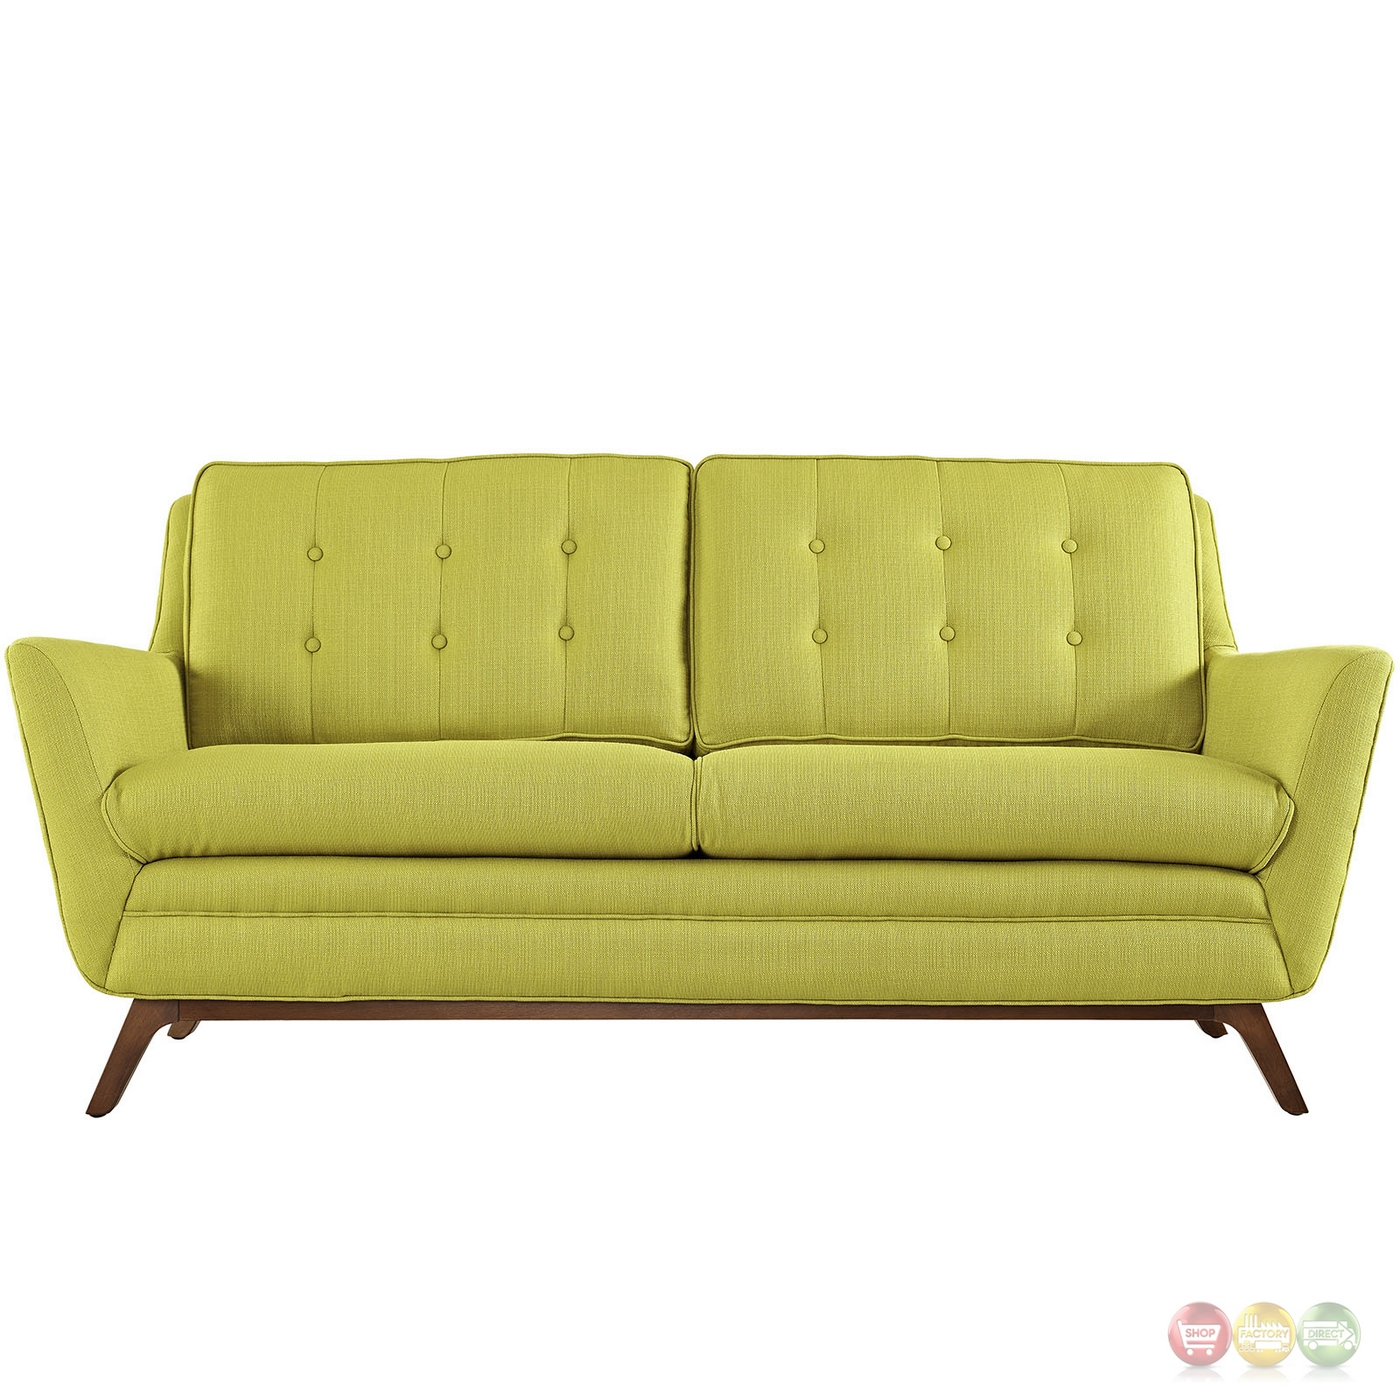 Beguile Contemporary Button Tufted Upholstered Loveseat Wheatgrass